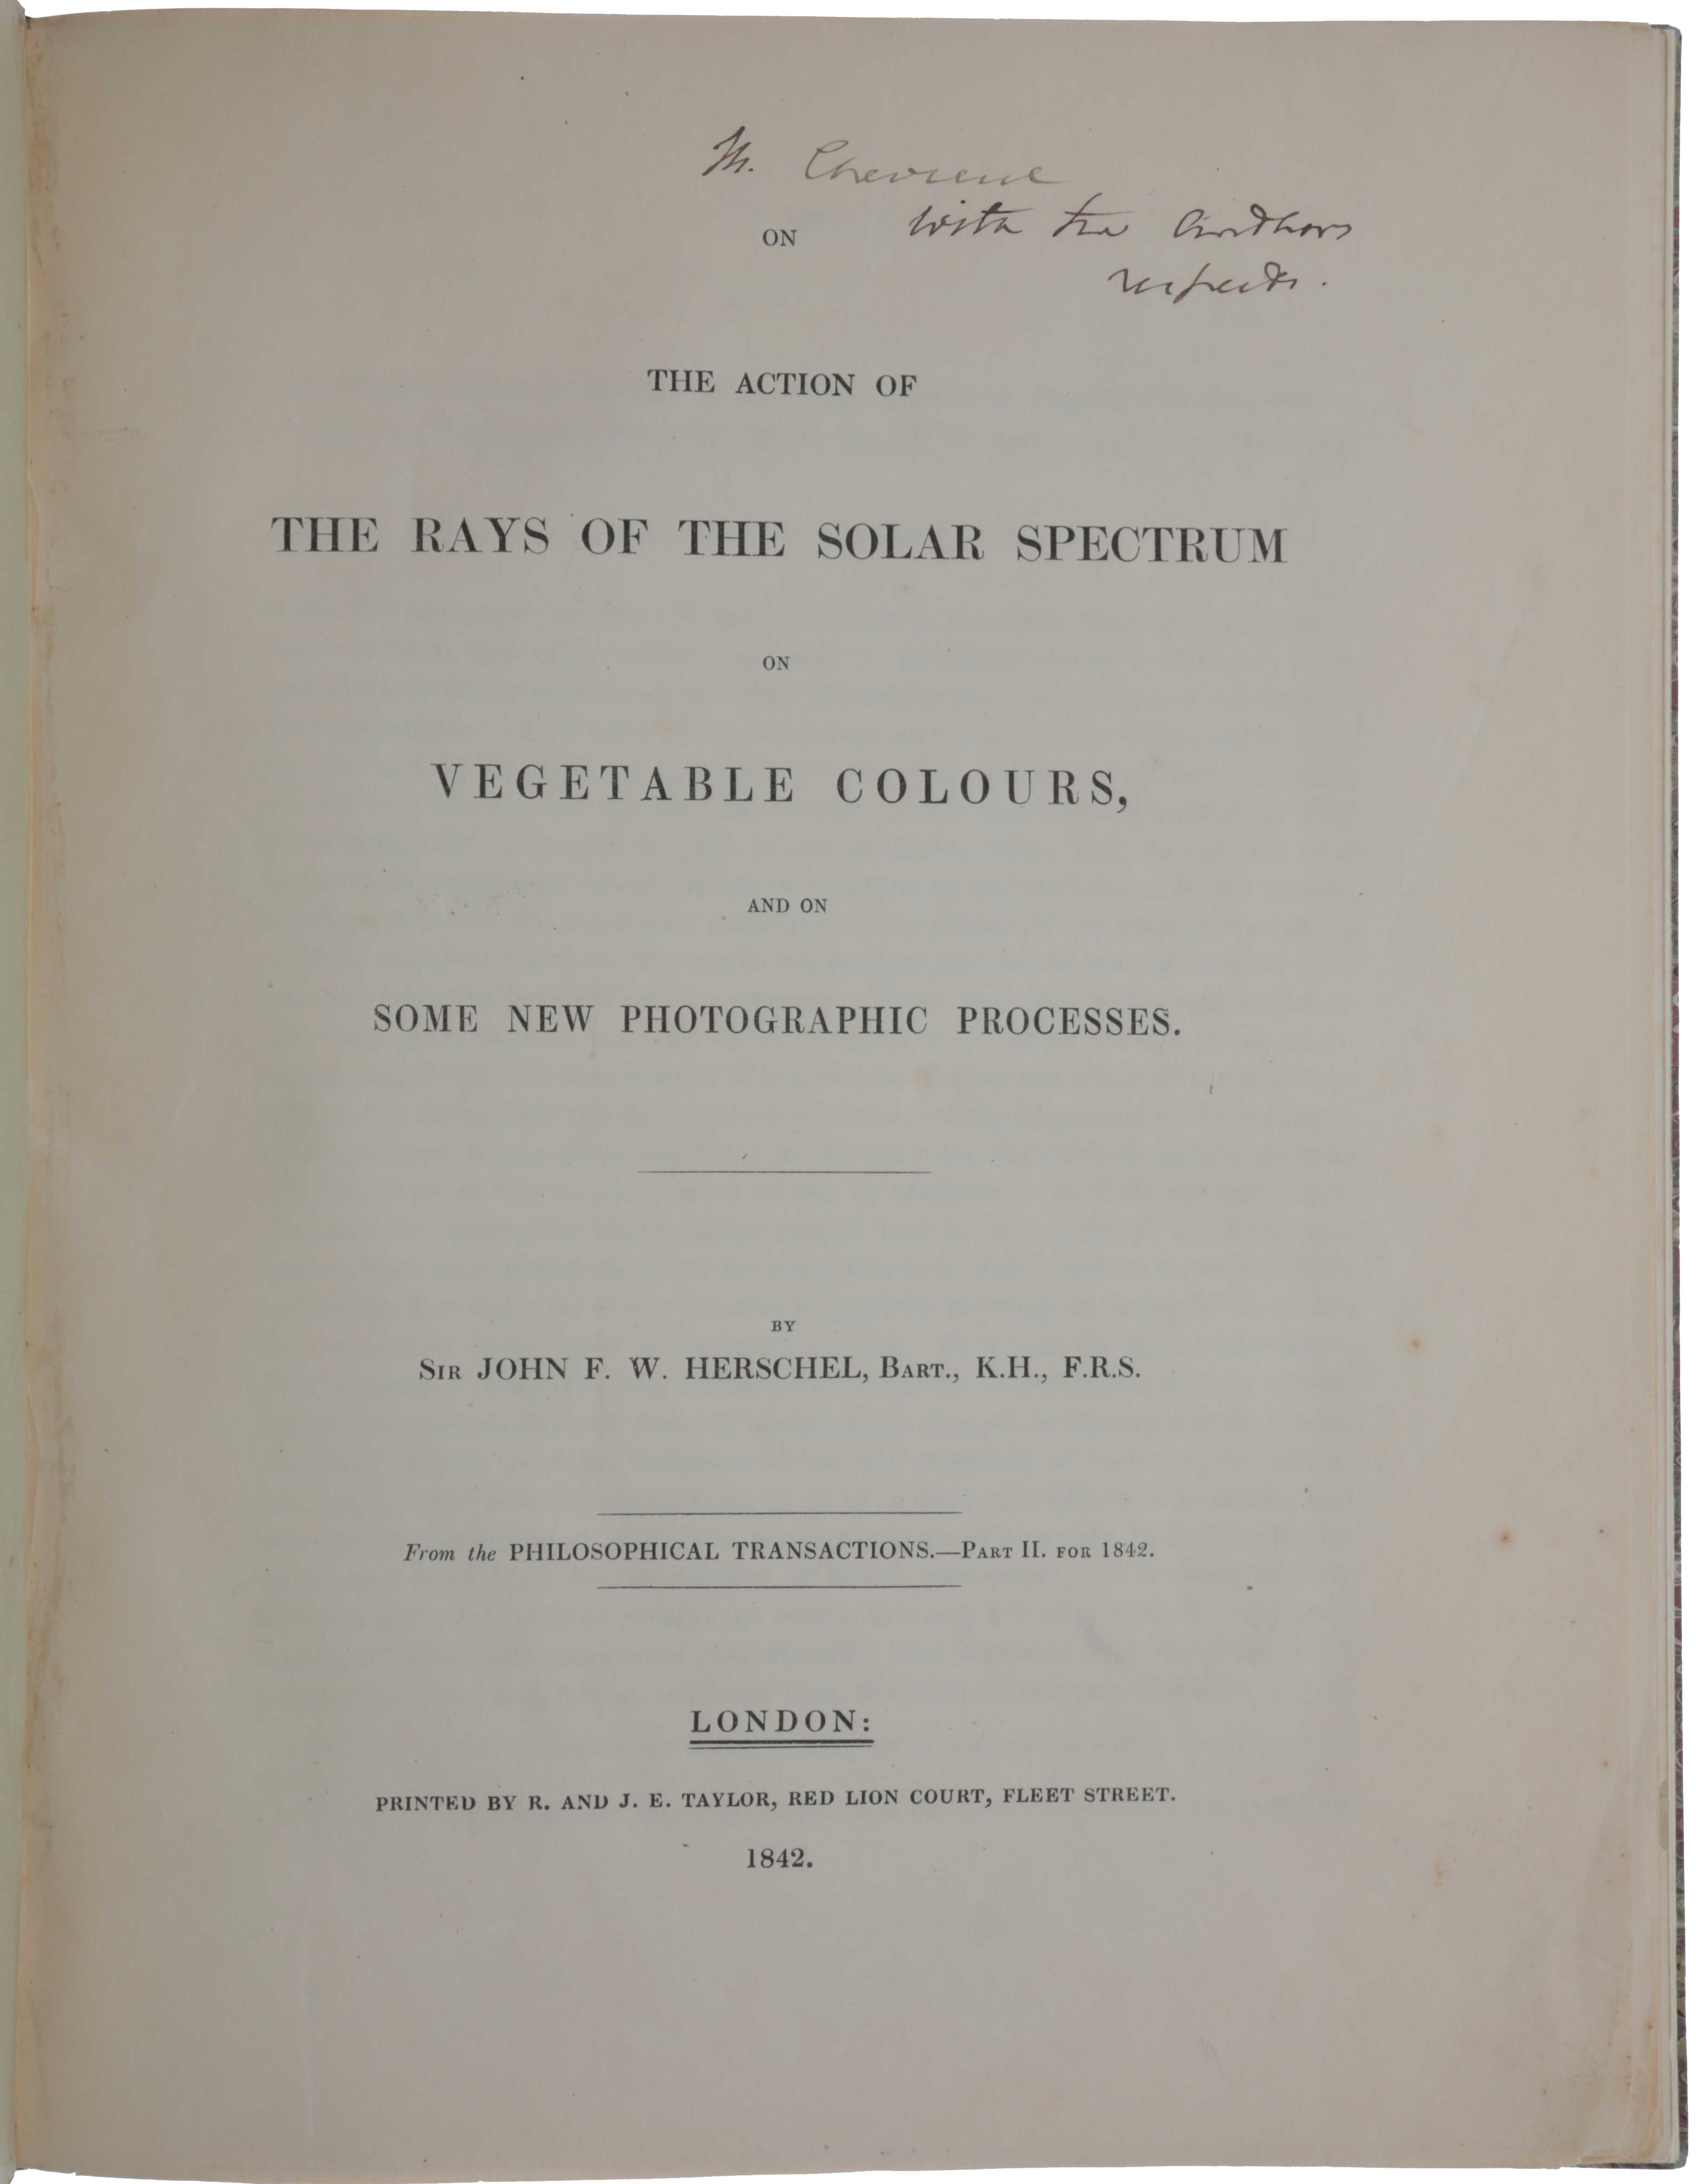 On the action of the rays of the solar spectrum on vegetable colours, and on some new photographic processes. John Frederick William HERSCHEL, Sir.